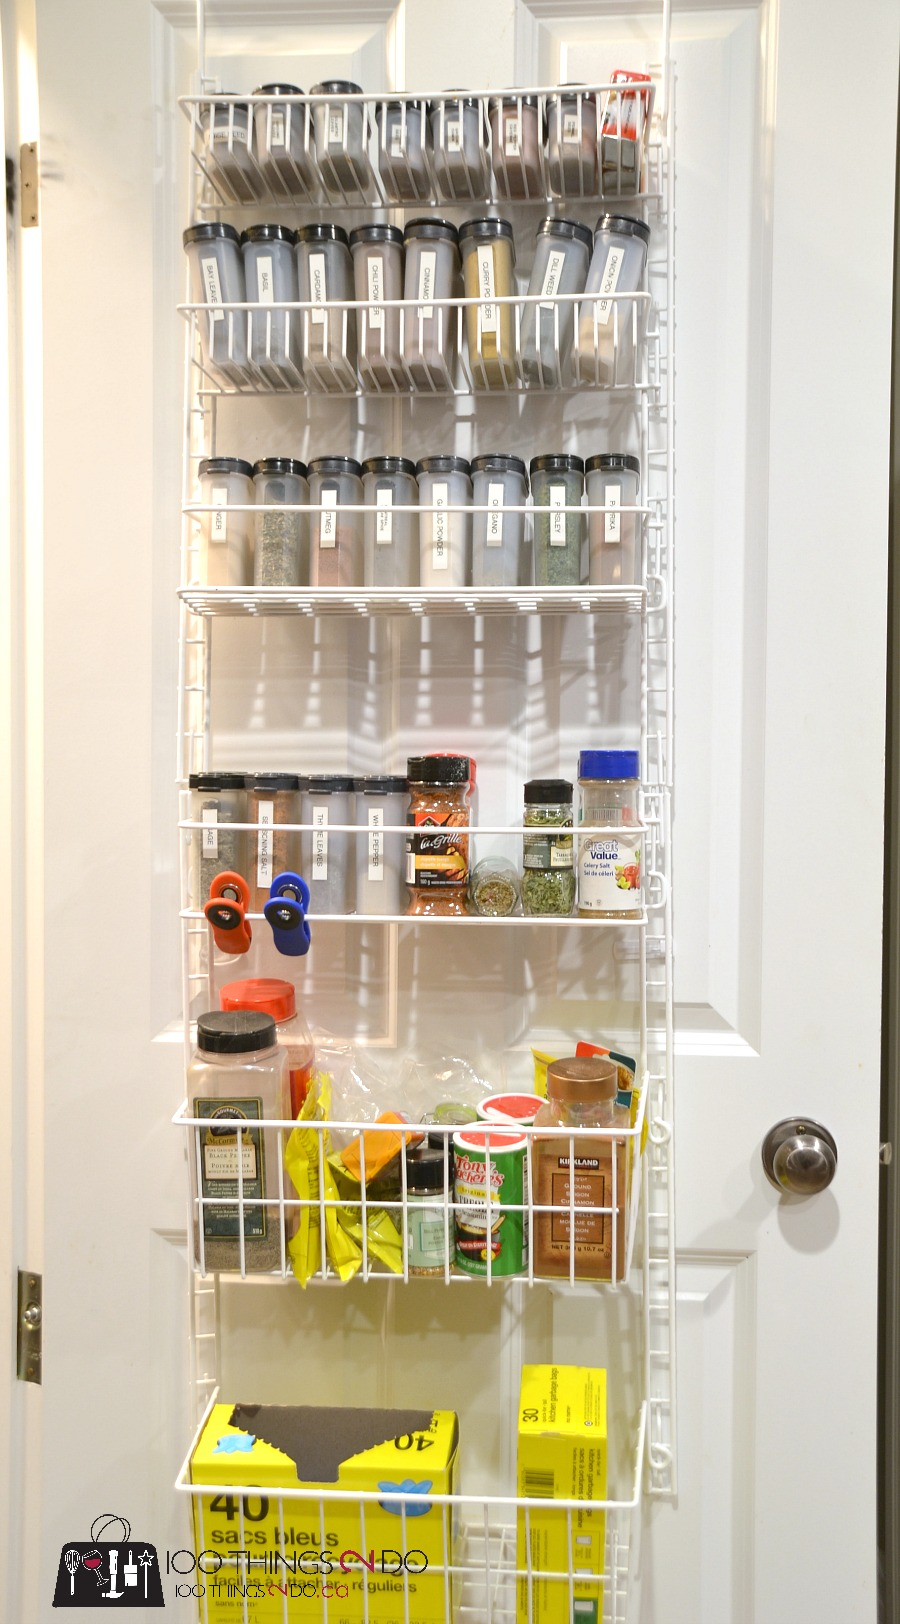 We have so many spice containers bags bottles and jars that the rack no longer sits flush against the door and instead sort of swings every time we open